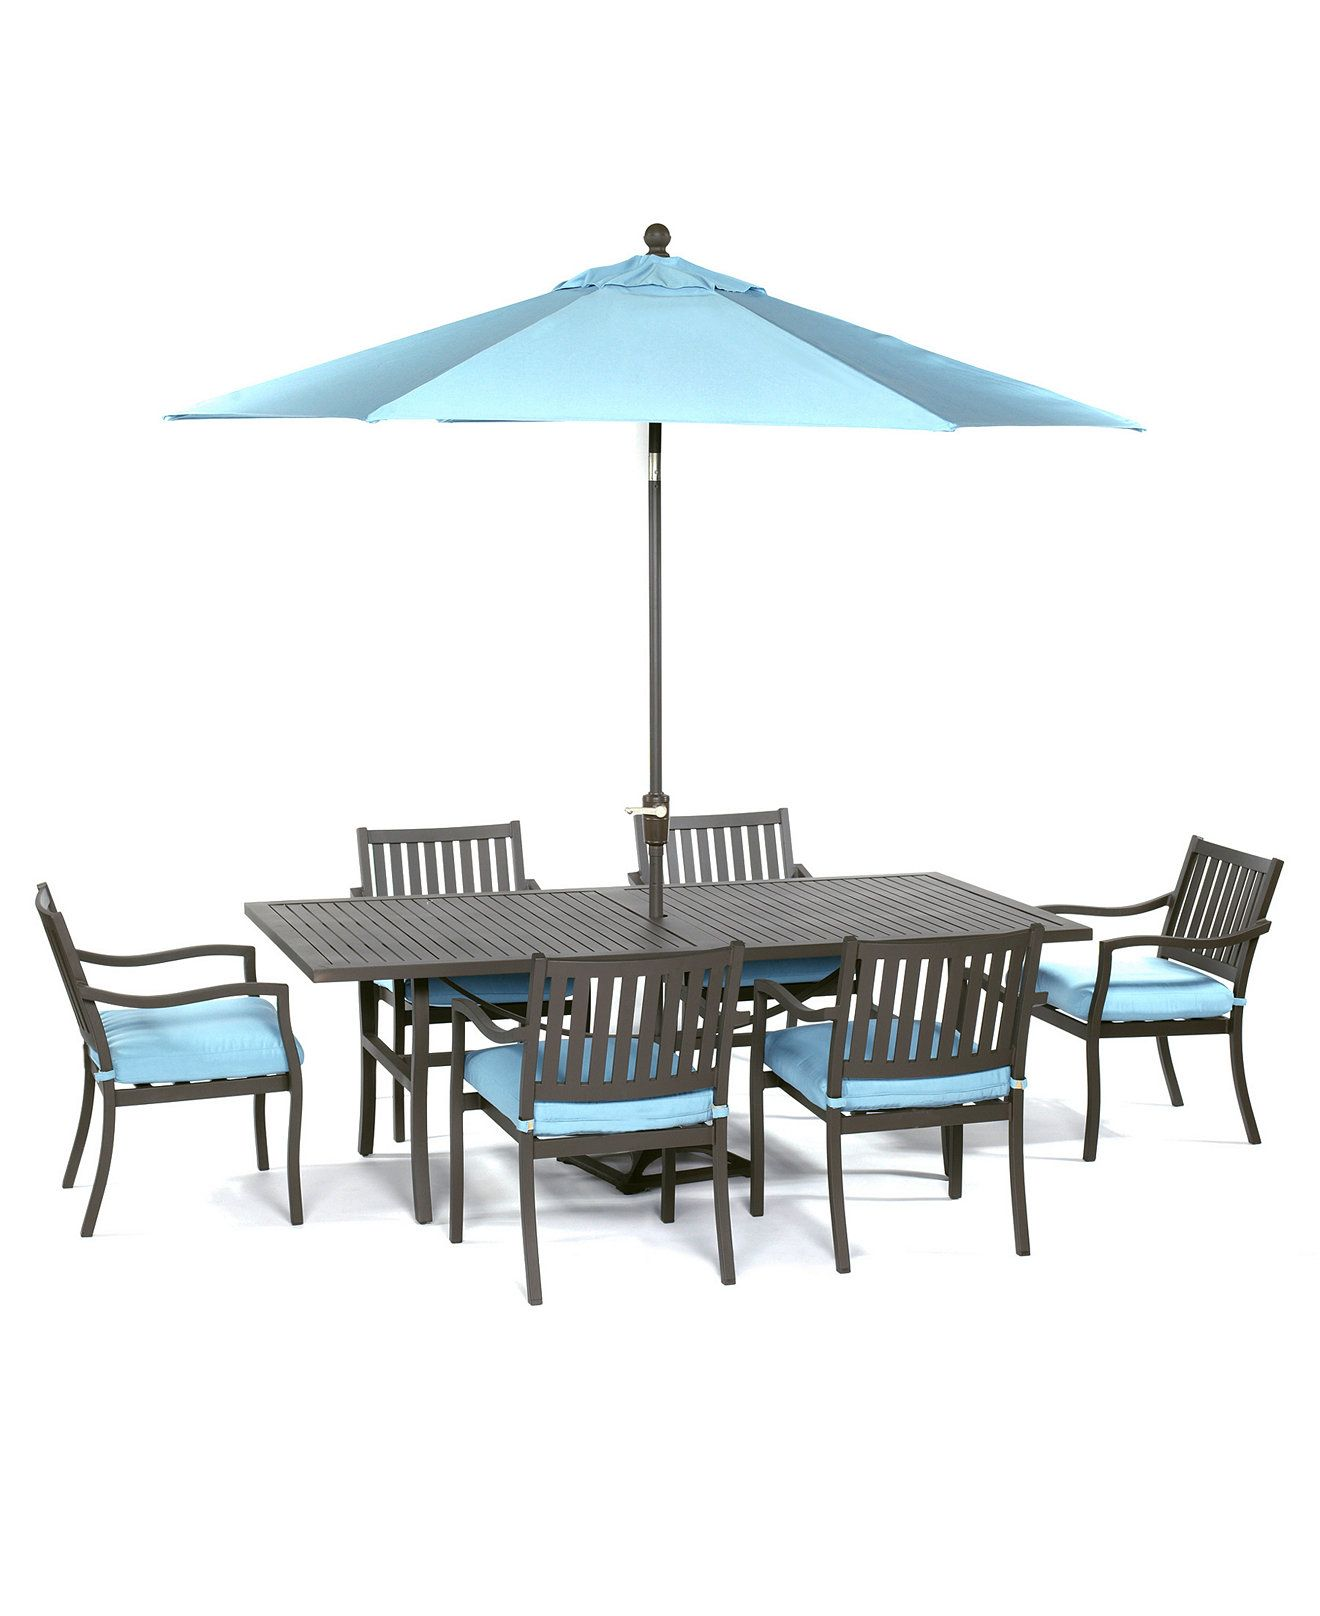 "Holden Outdoor Patio Furniture 7 Piece Set 84"" x 42"" Dining"